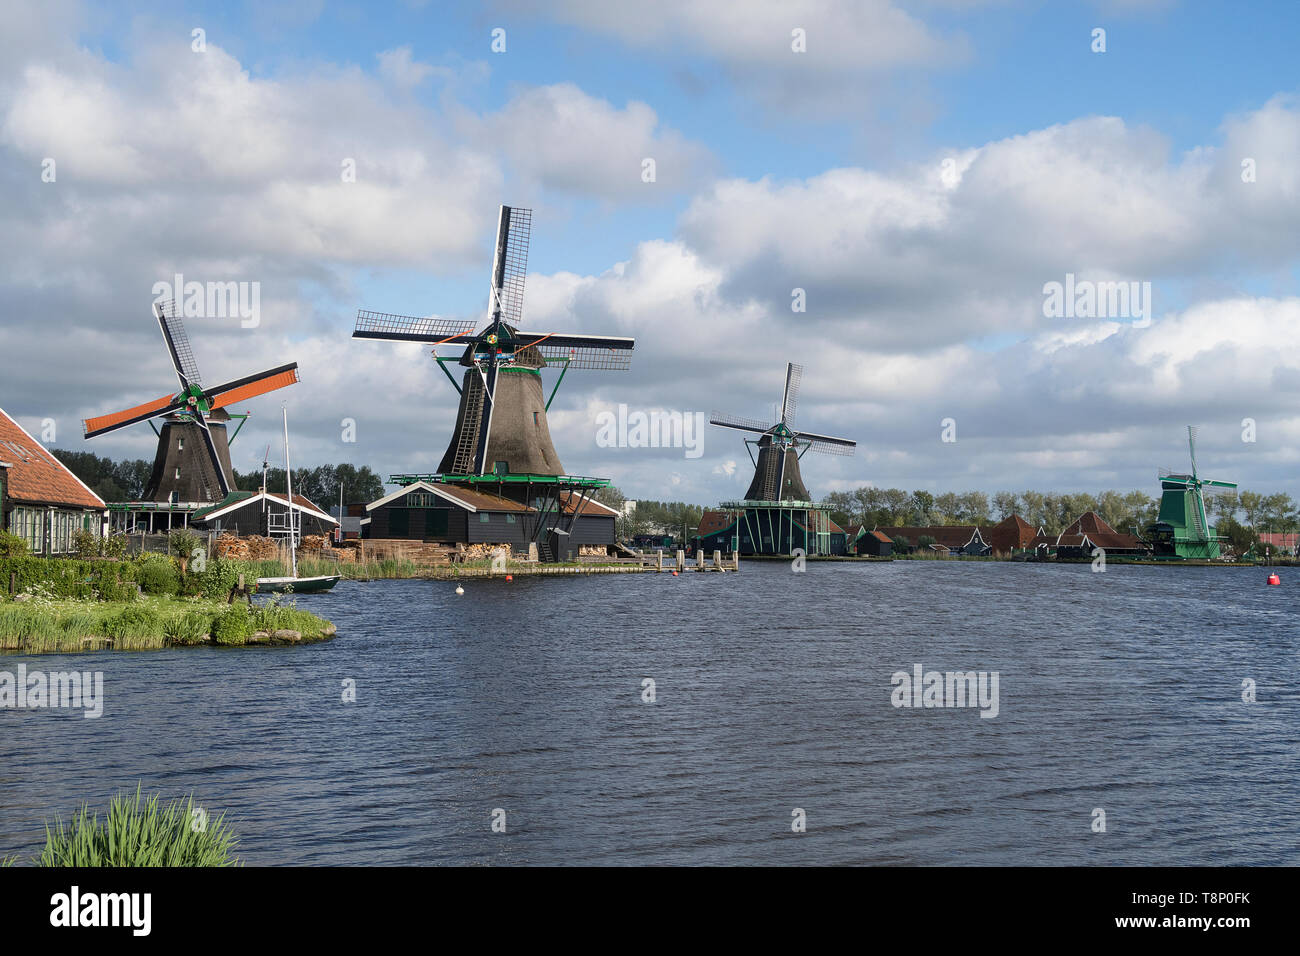 Windmills of the Zaanse Schans a populair historic tourist village in the Netherlands - Stock Image